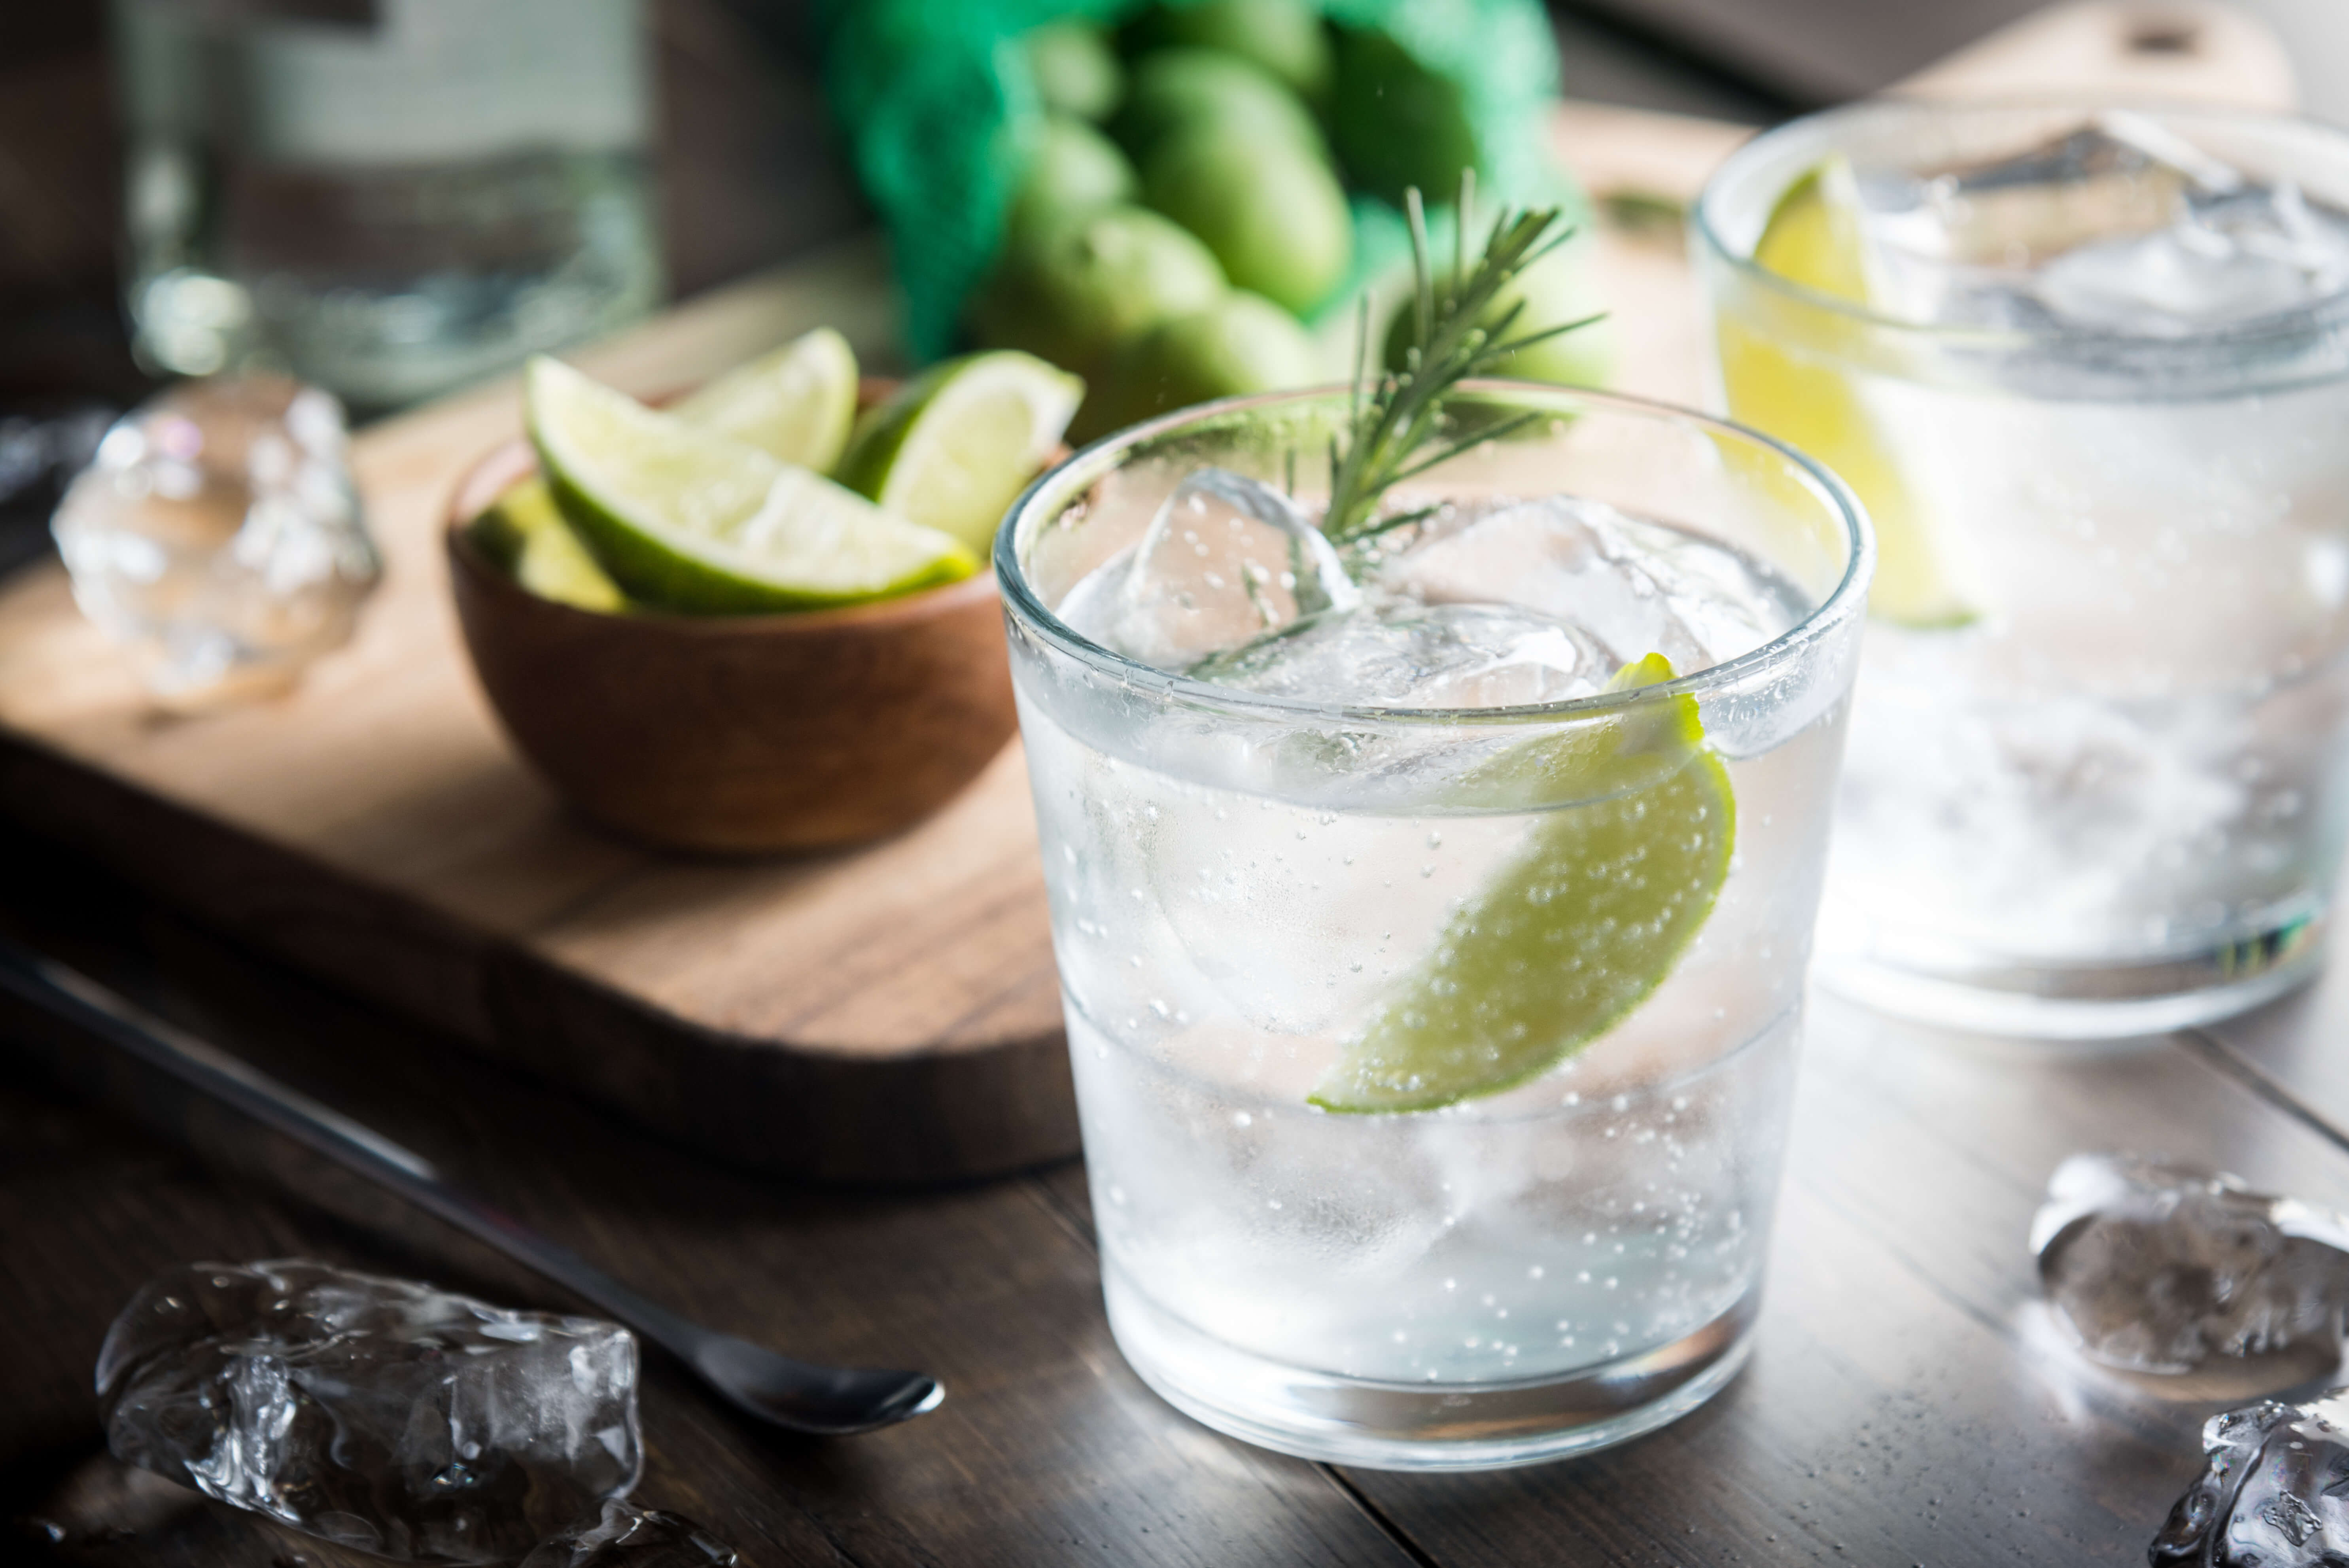 How to choose tonic water for gin & tonic?